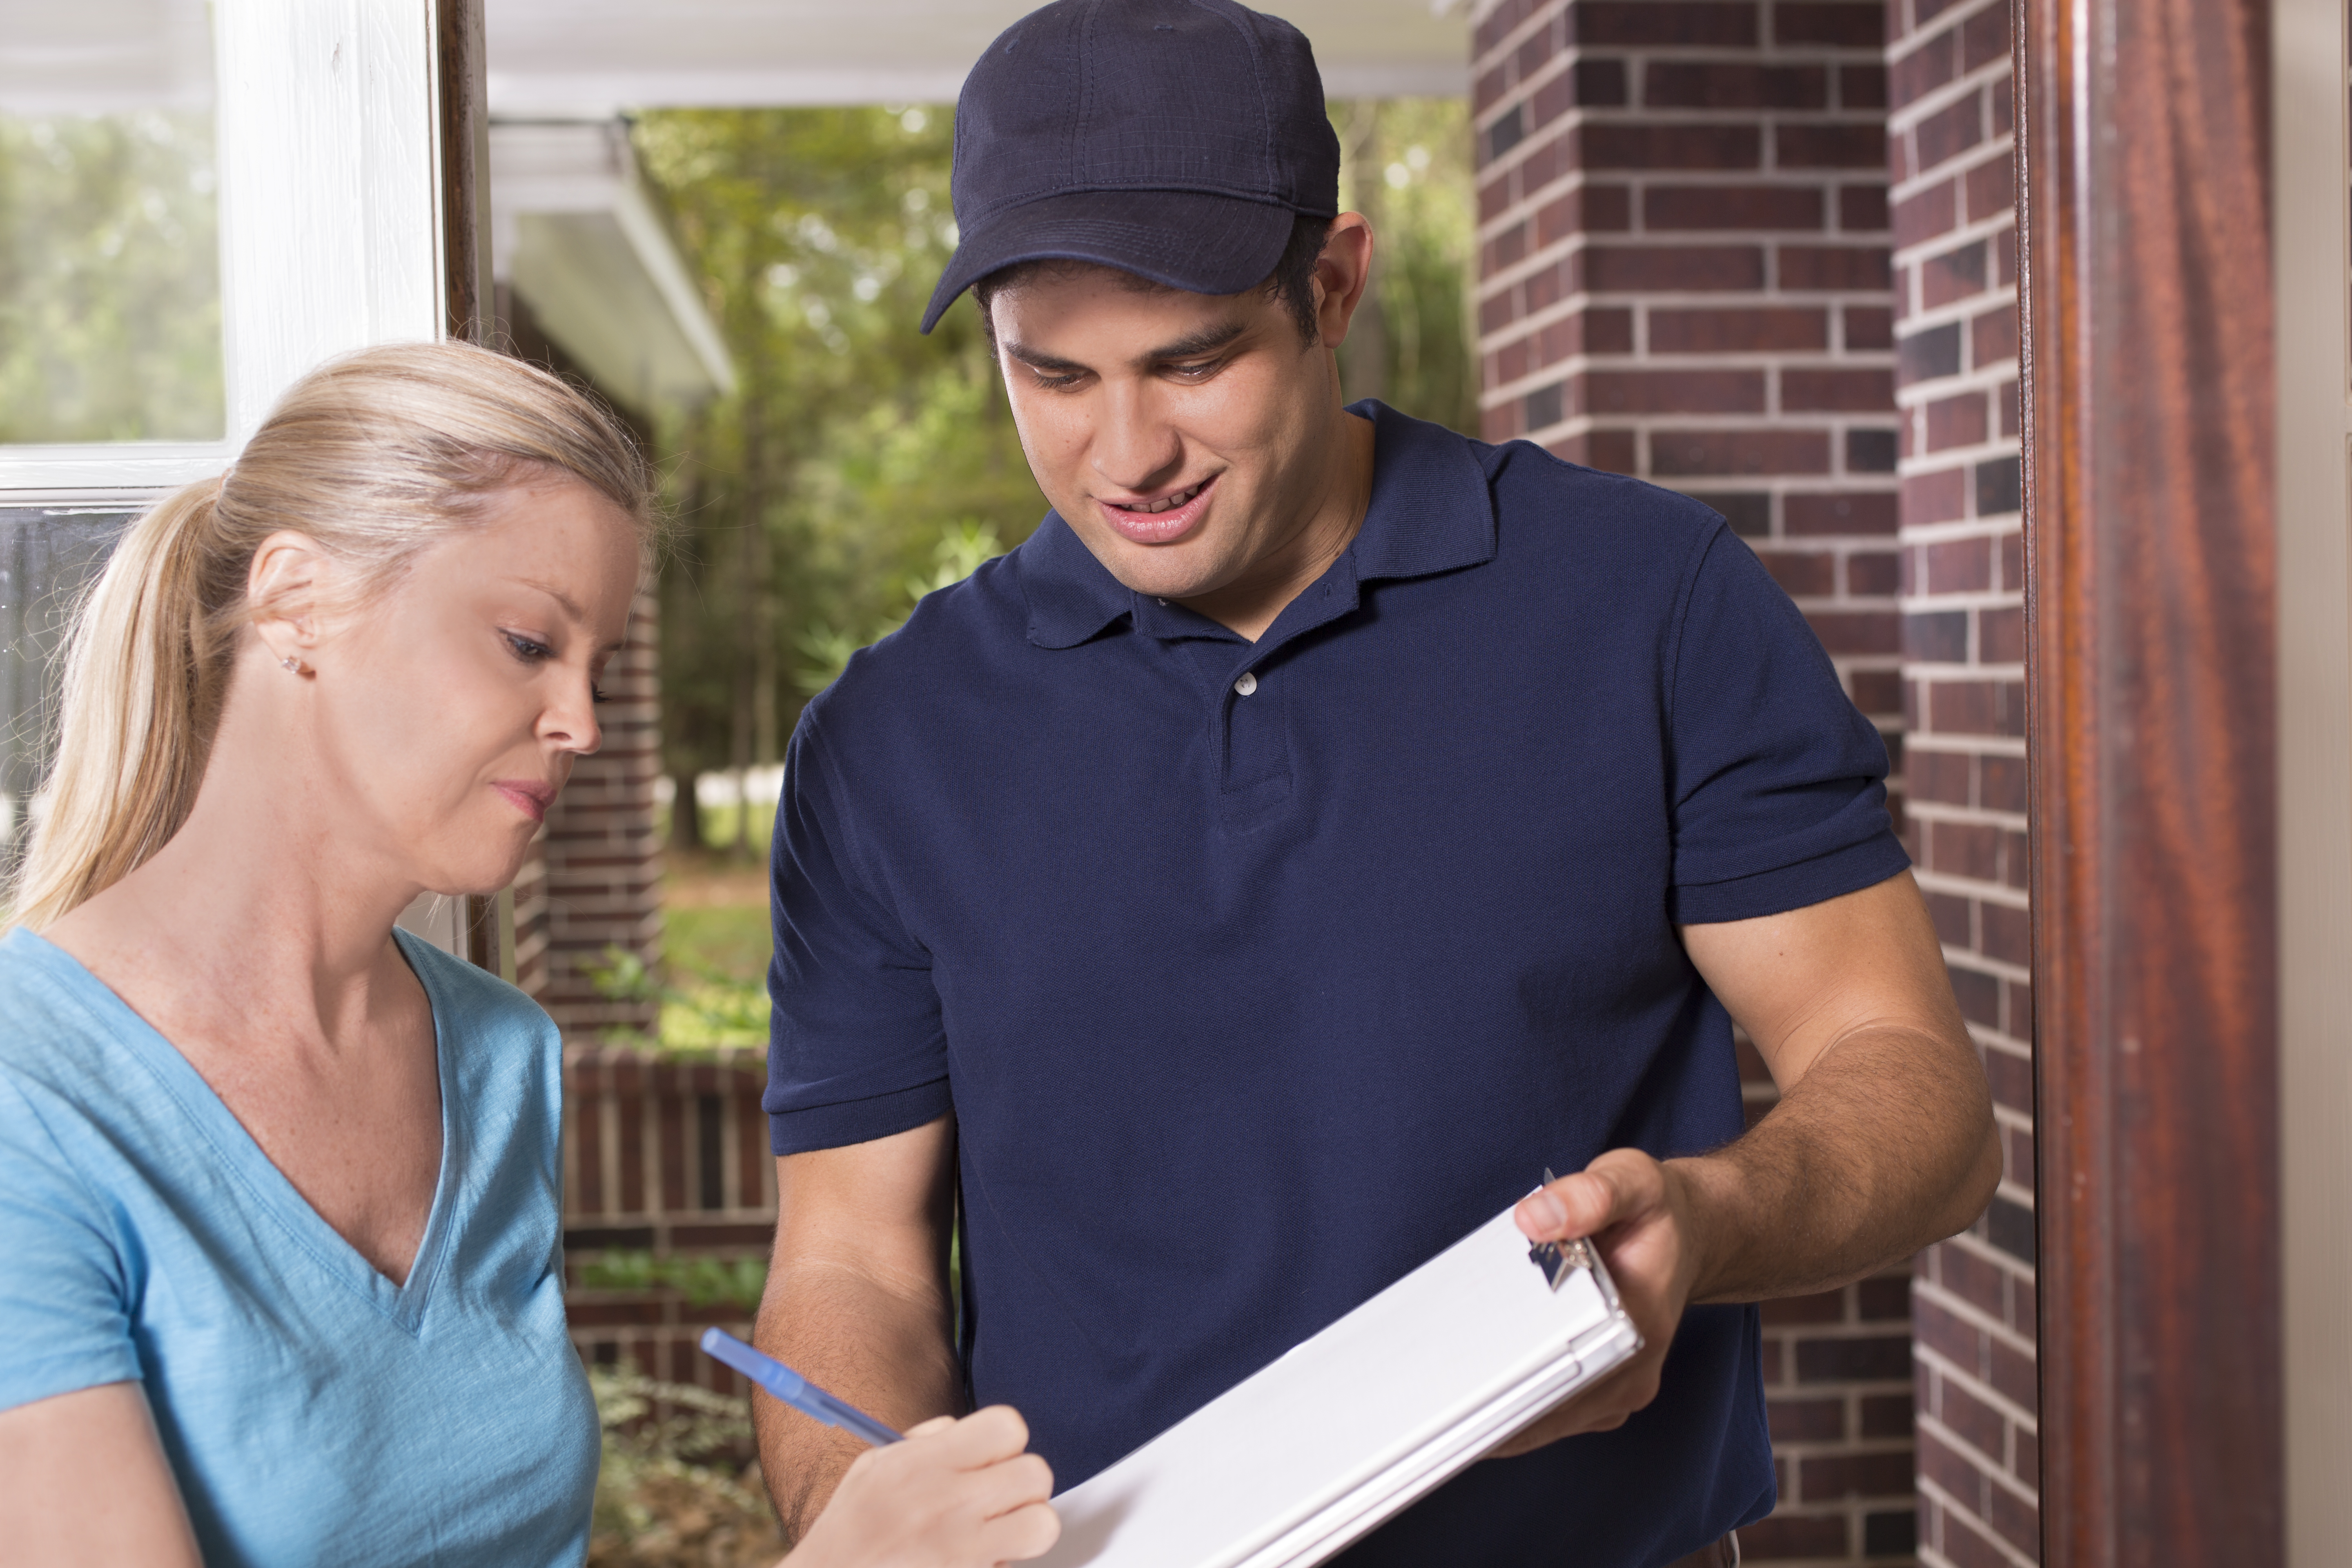 Repairman or delivery person at customer's front door.